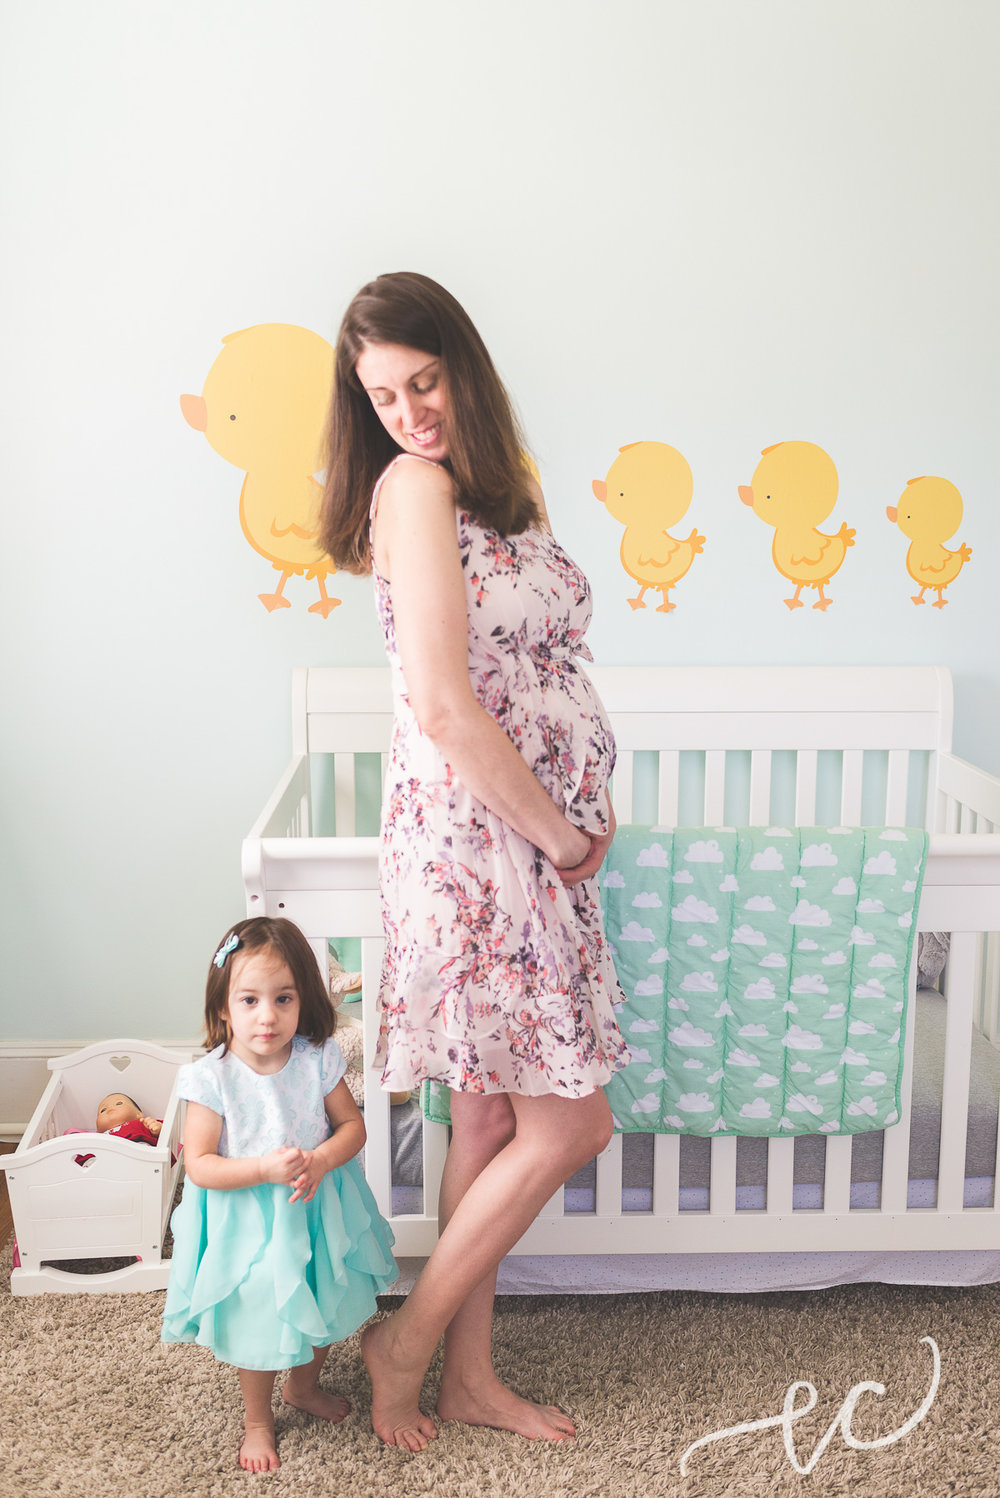 norristown-maternity-photography-02.jpg